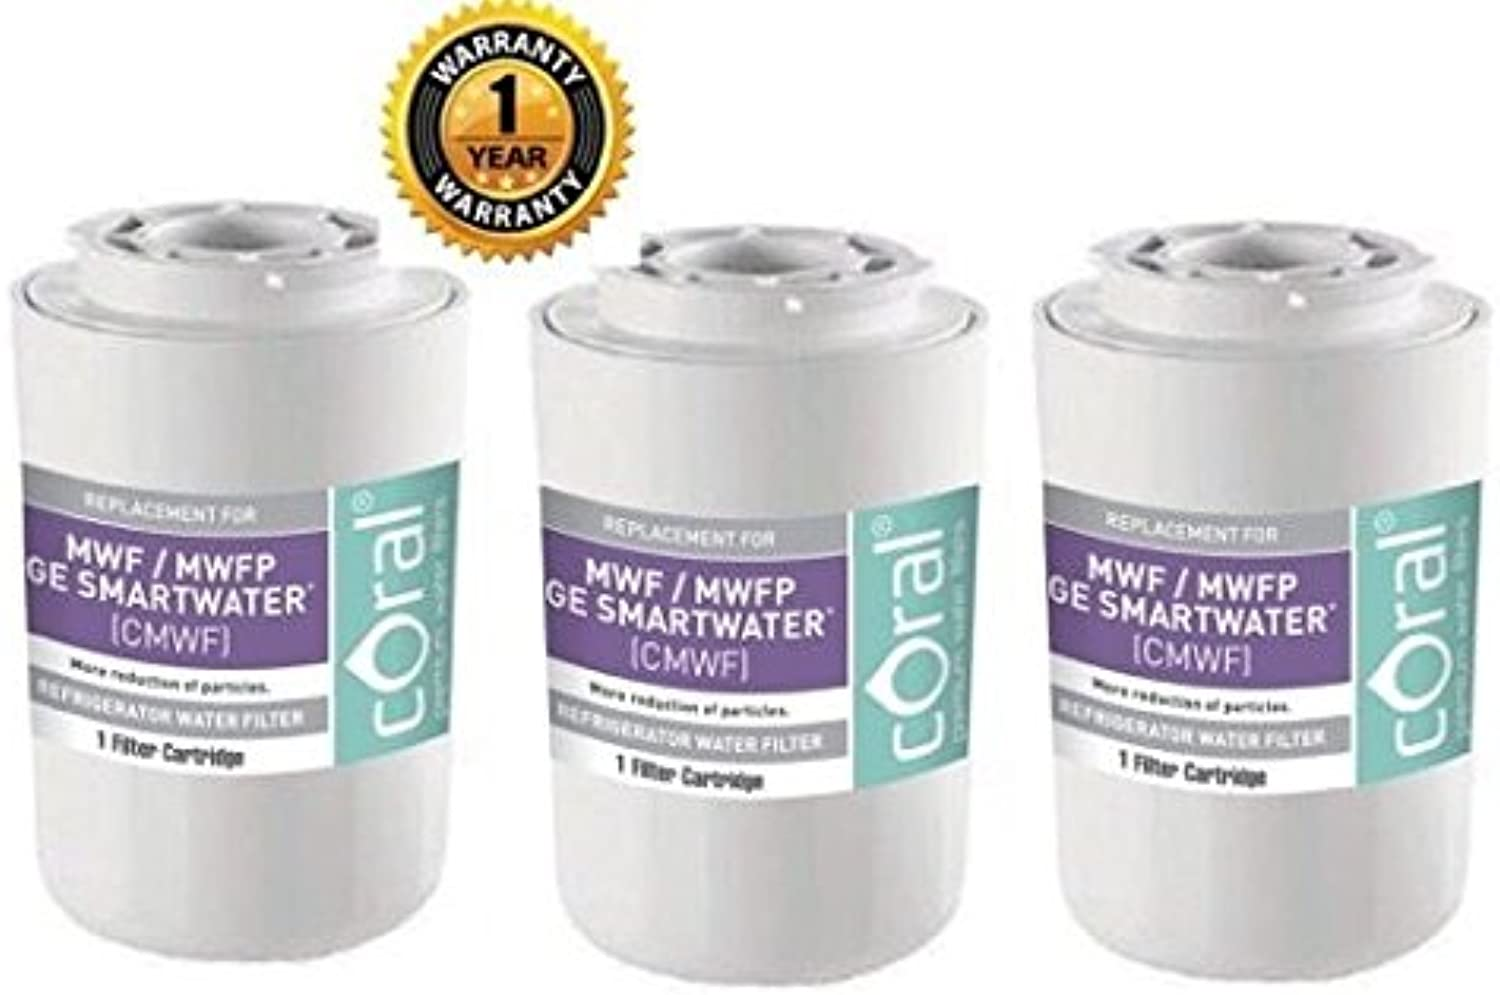 3 Pack Ge Mwf Smartwater Mwfp Wf287 Wsg-1 Eff-6013a Comparable Water Filter